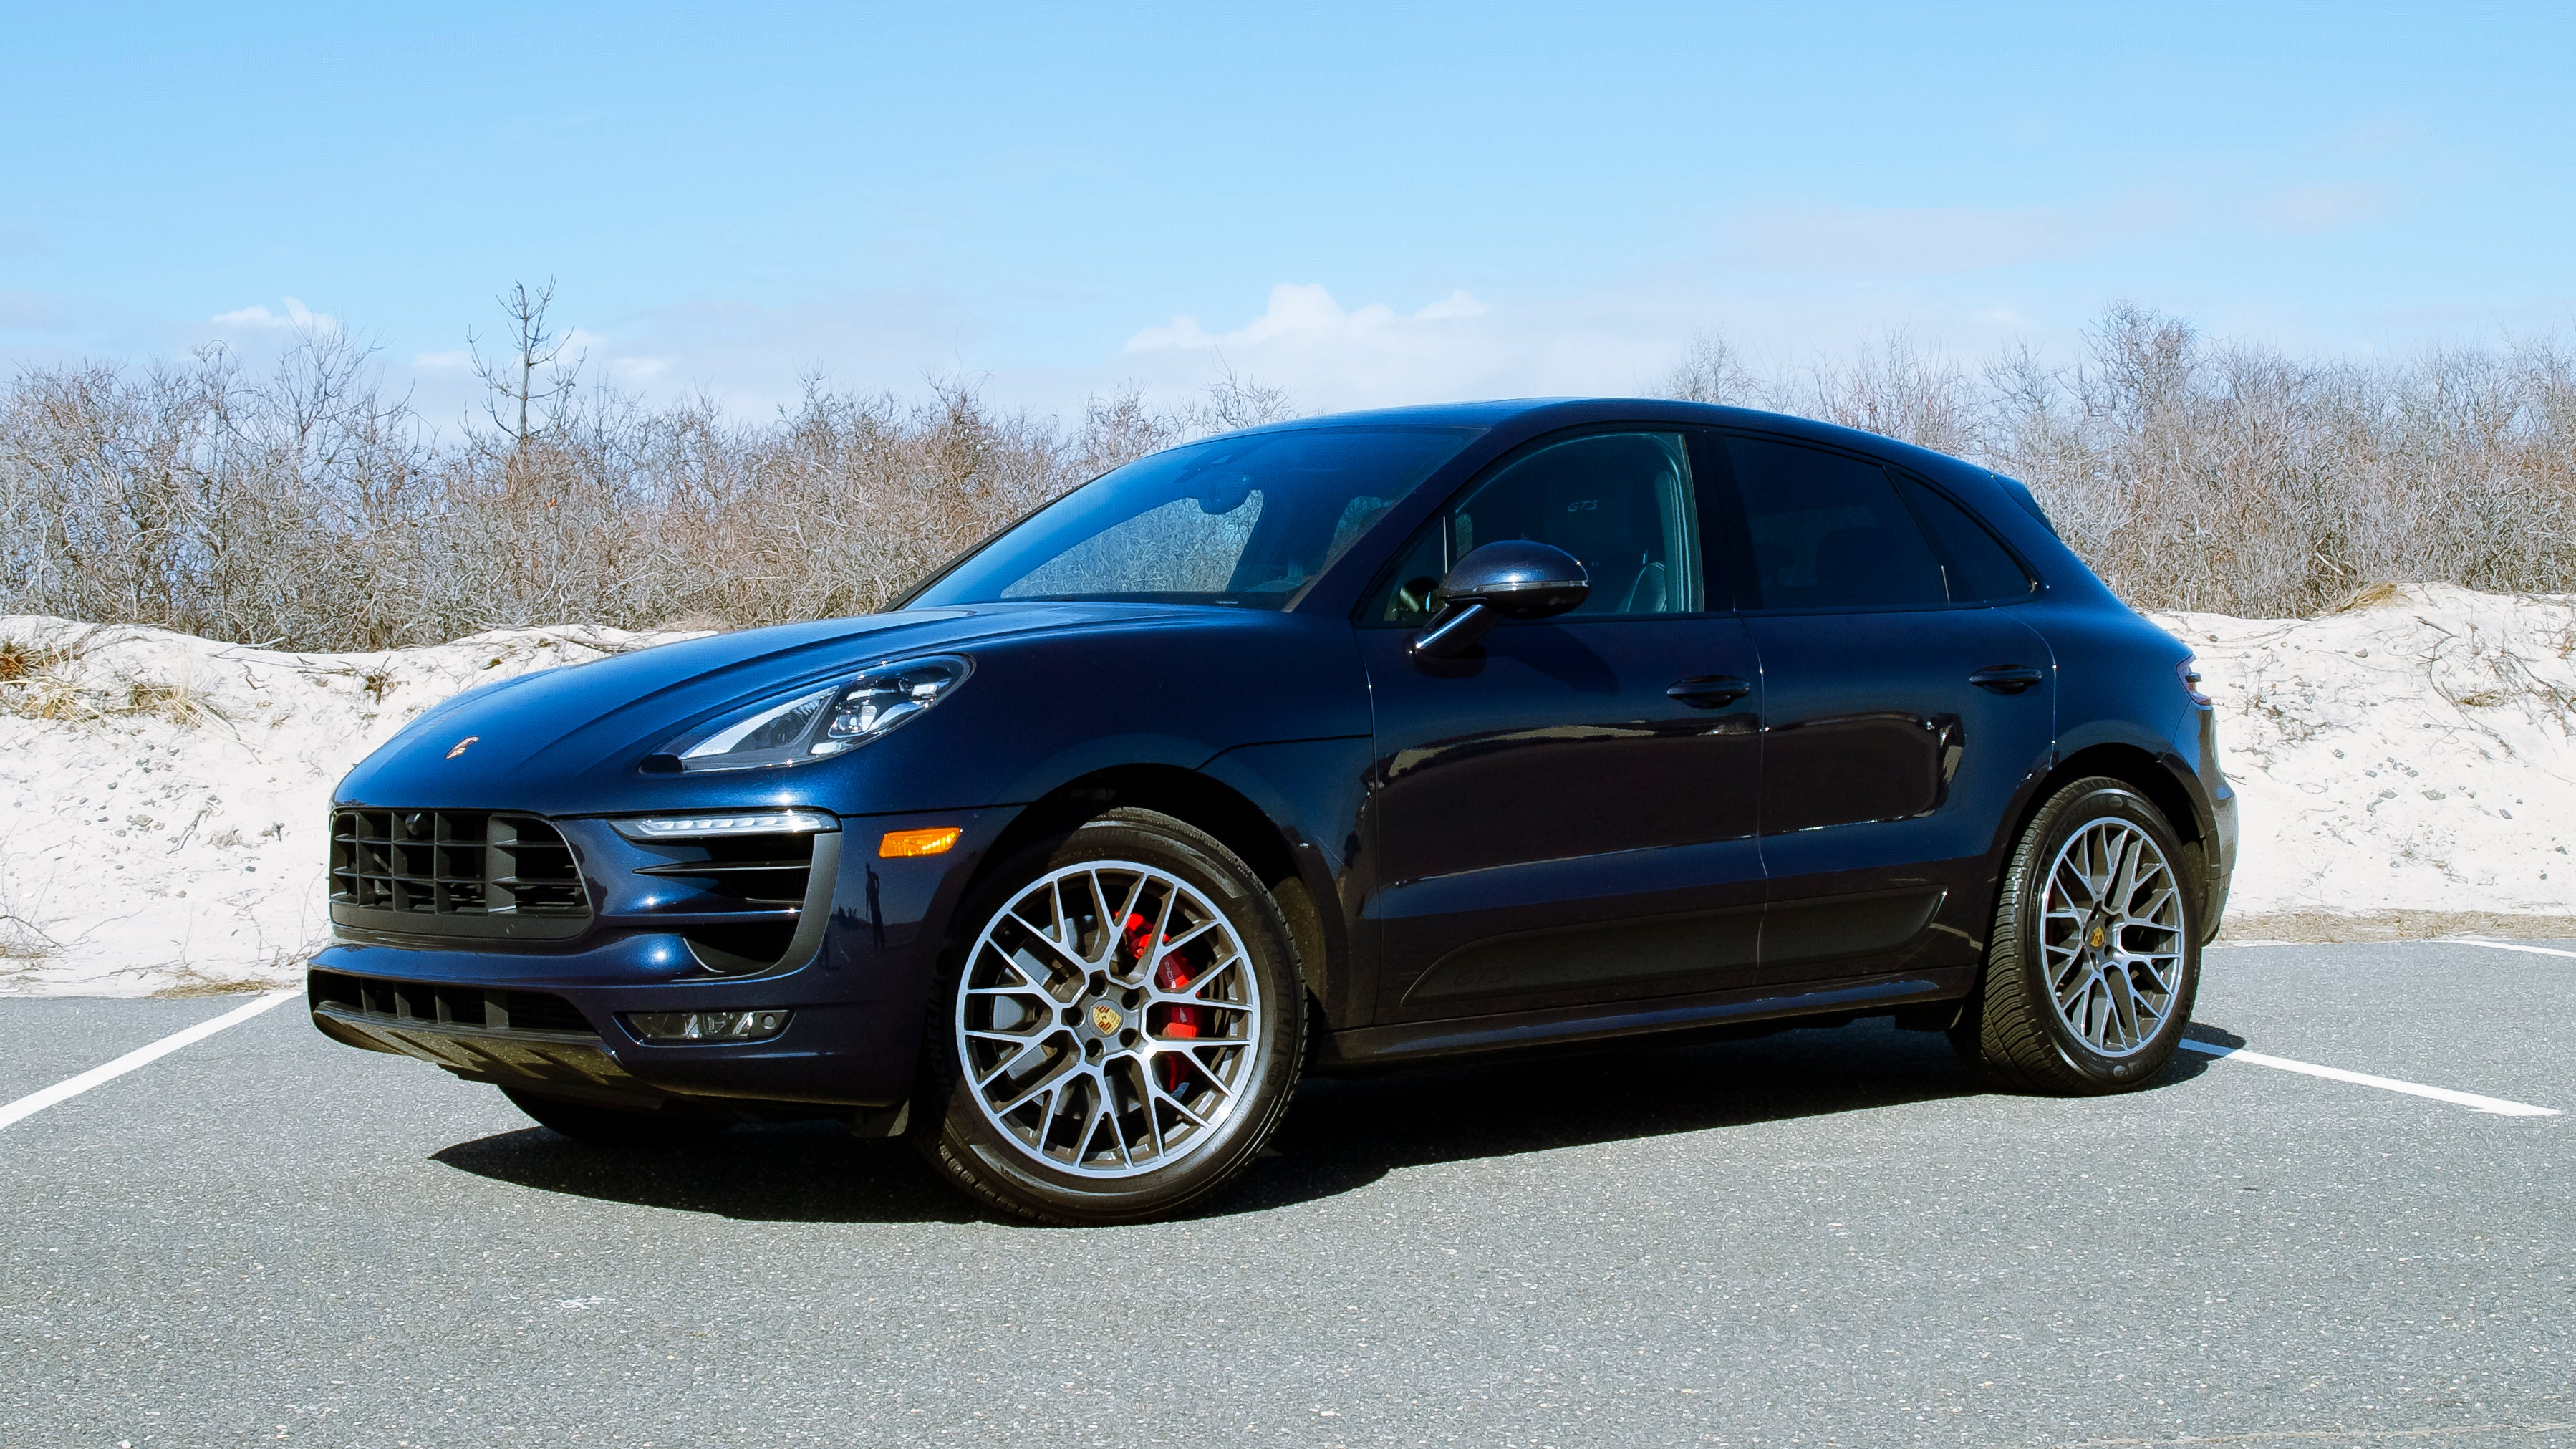 The Porsche Macan GTS Is The Ultimate City Survival Vehicle ... on 1000 hp car, how fast do bugatti's go, how fast is a bugatti car,